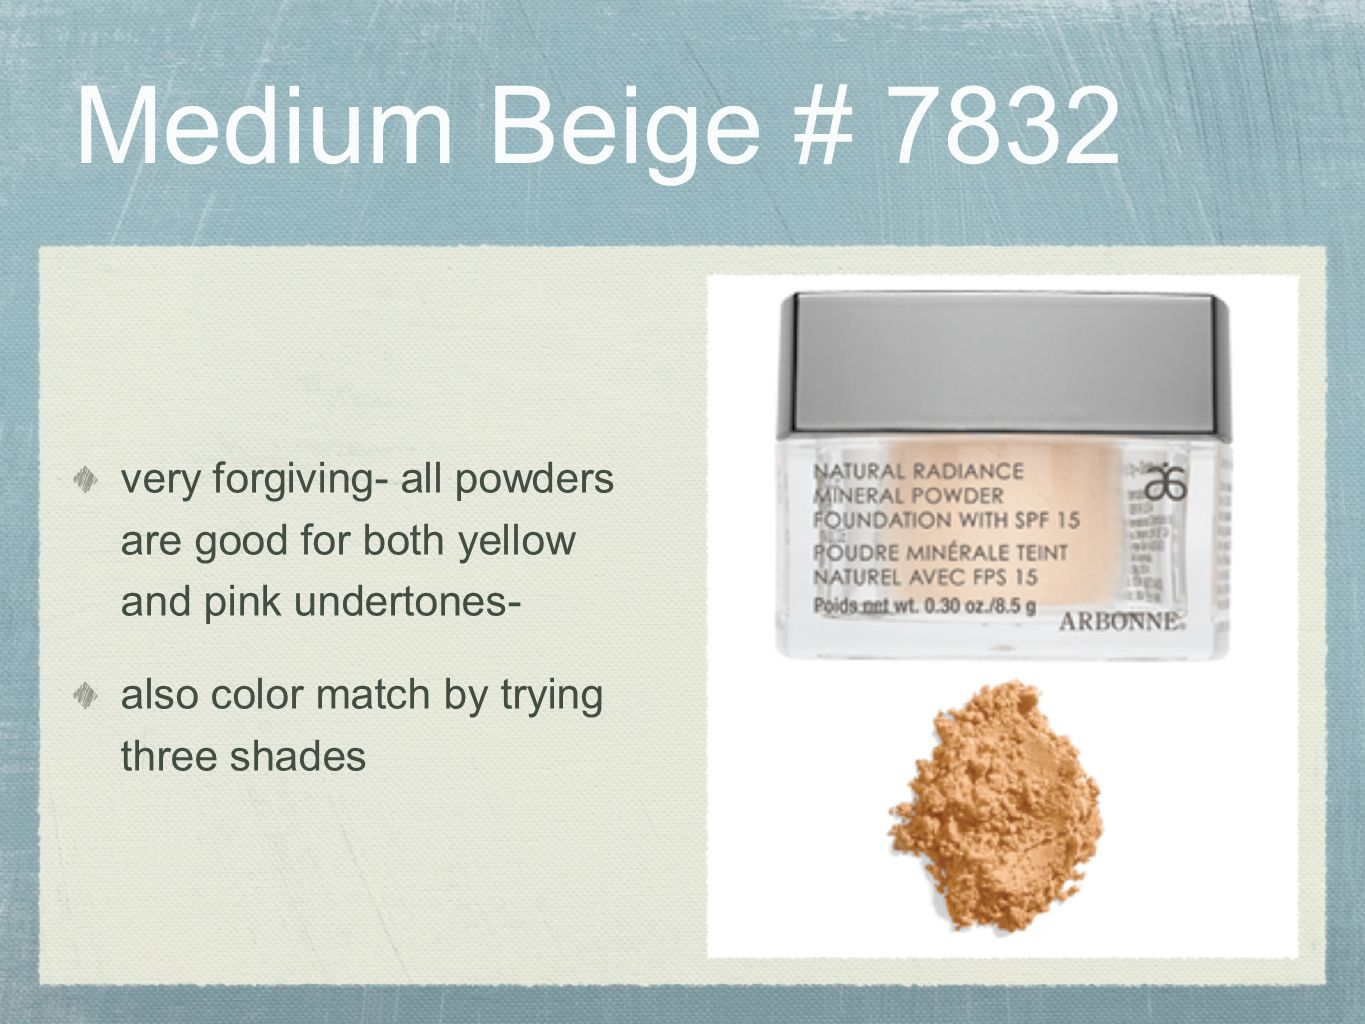 Medium Beige # 7832 very forgiving- all powders are good for both yellow and pink undertones- also color match by trying three shades.